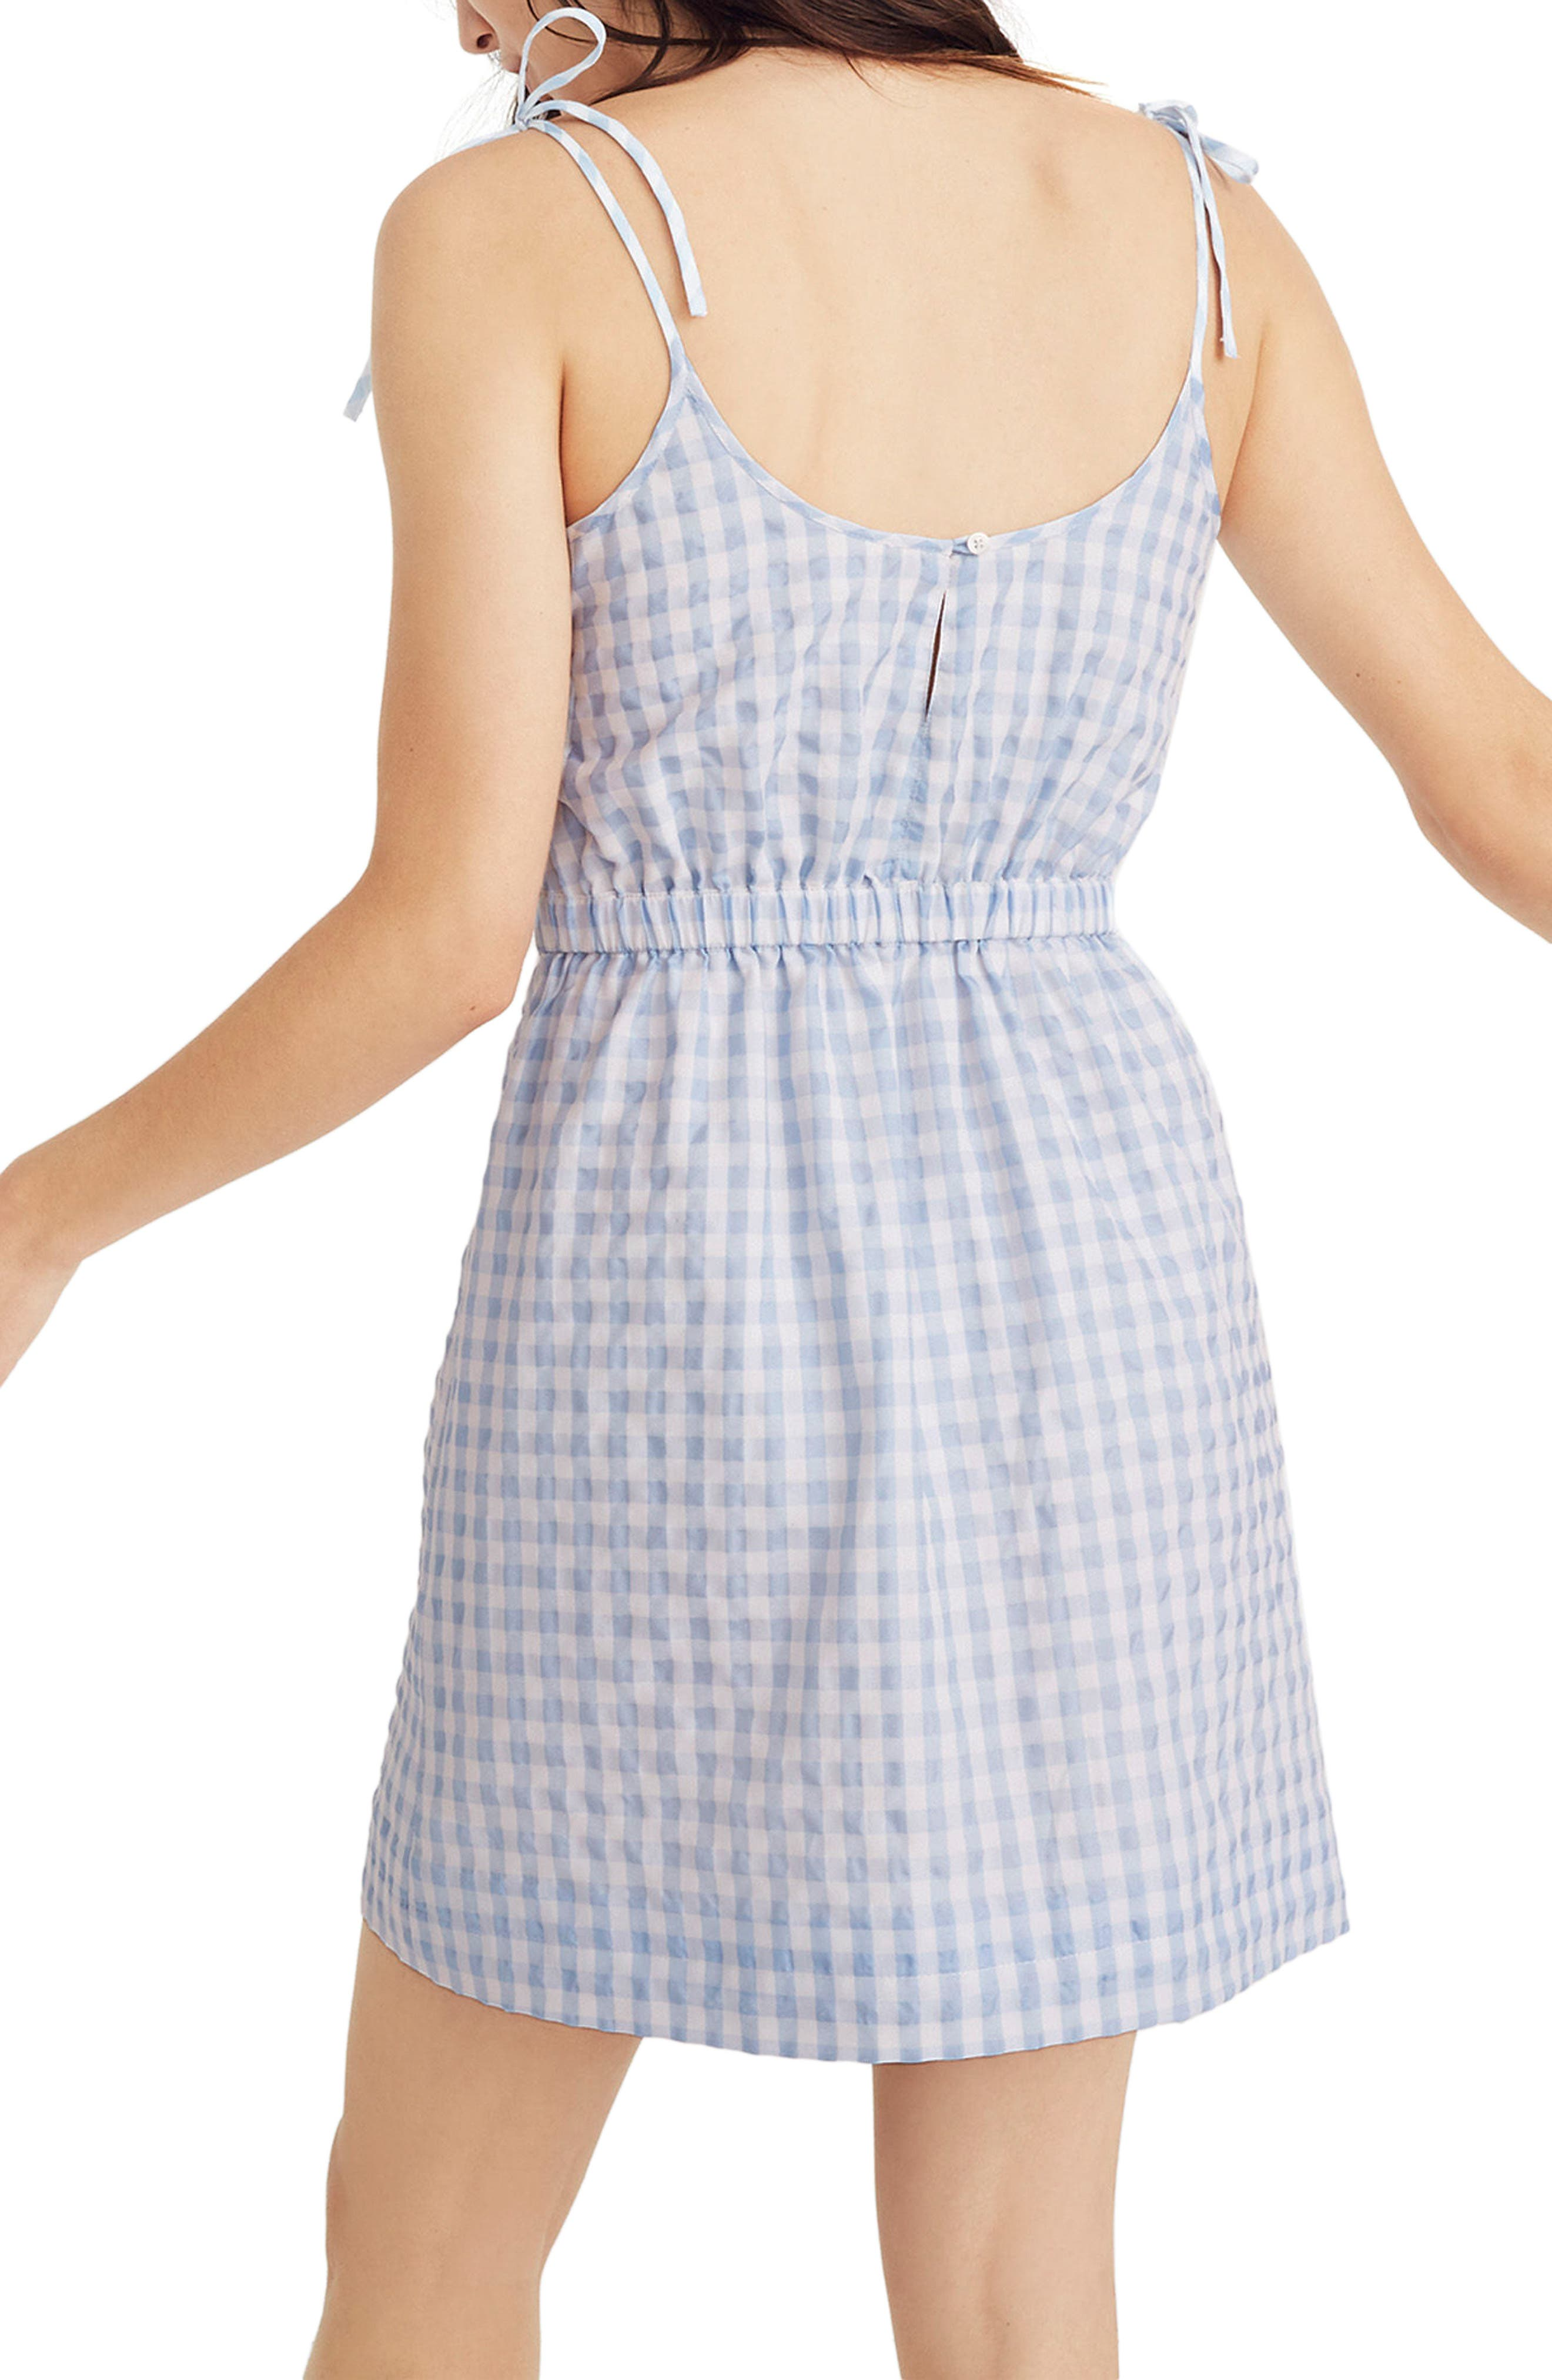 MADEWELL,                             Tie Strap Gingham Dress,                             Main thumbnail 1, color,                             400